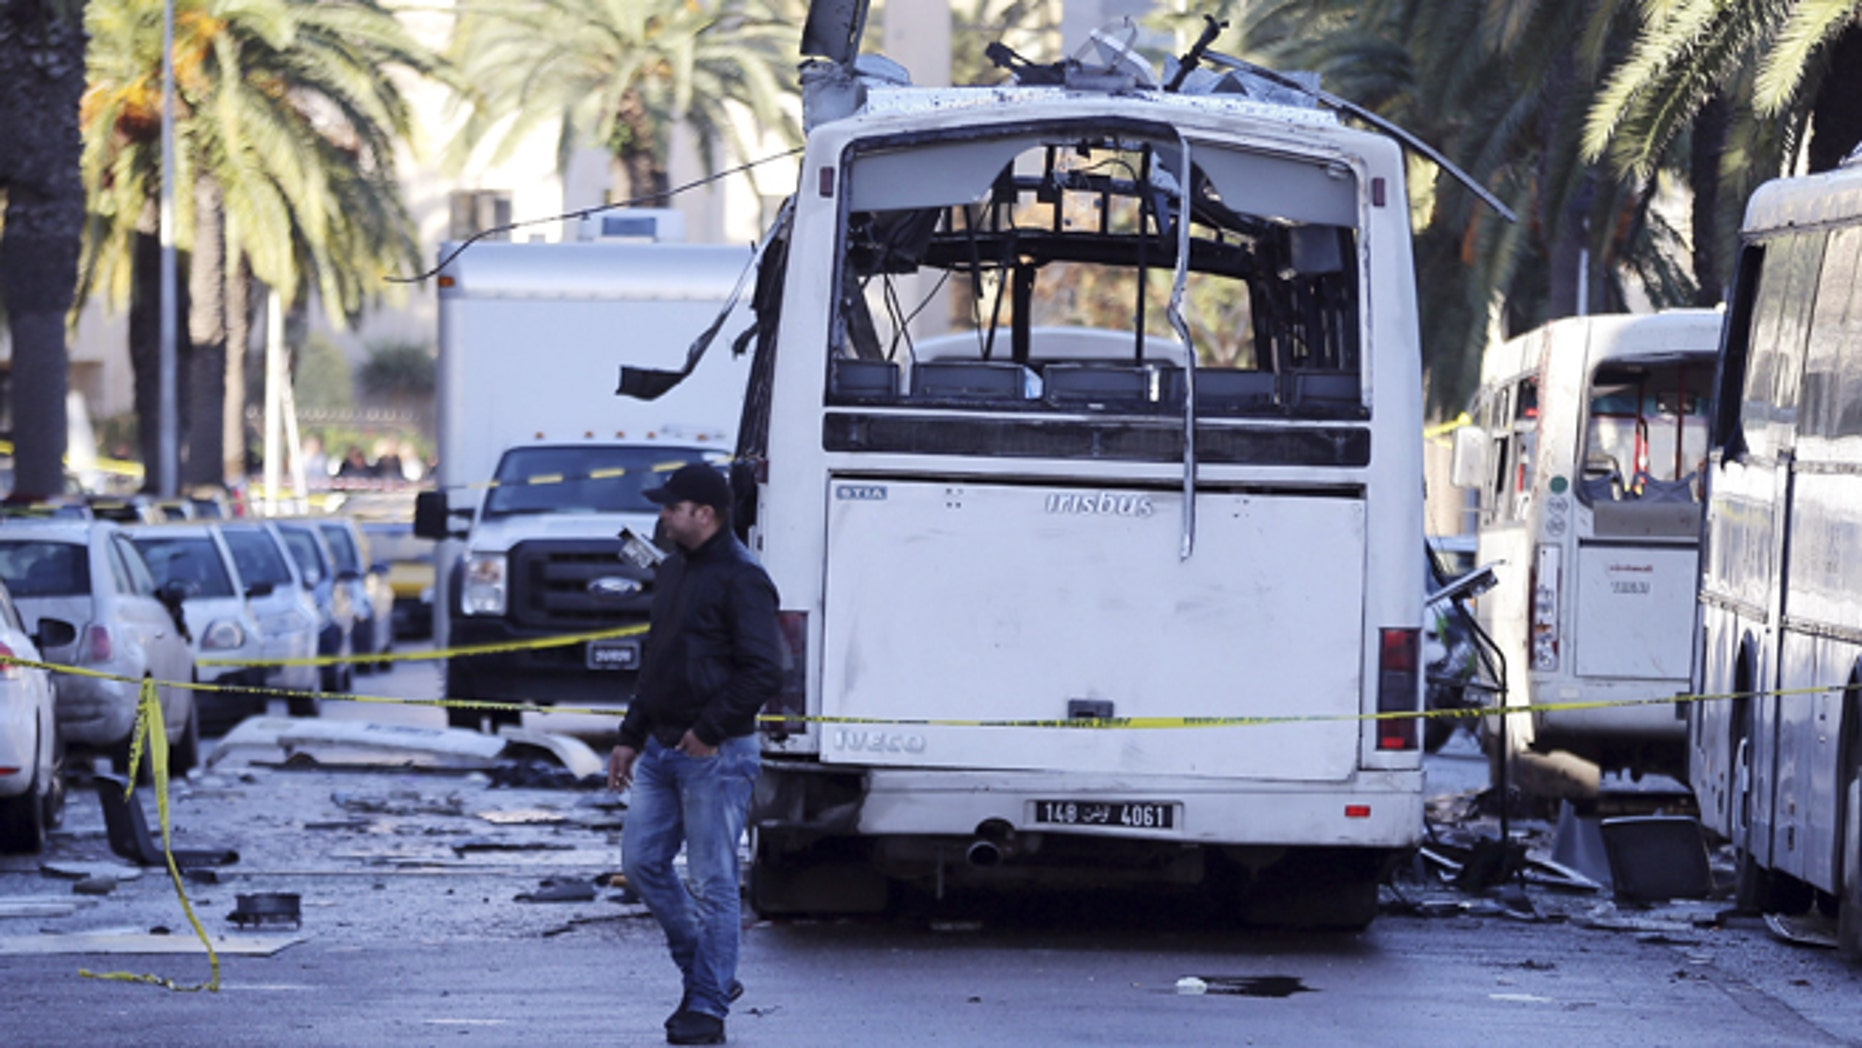 Nov. 25, 2015: A man walks past the bus that exploded Tuesday in Tunis.